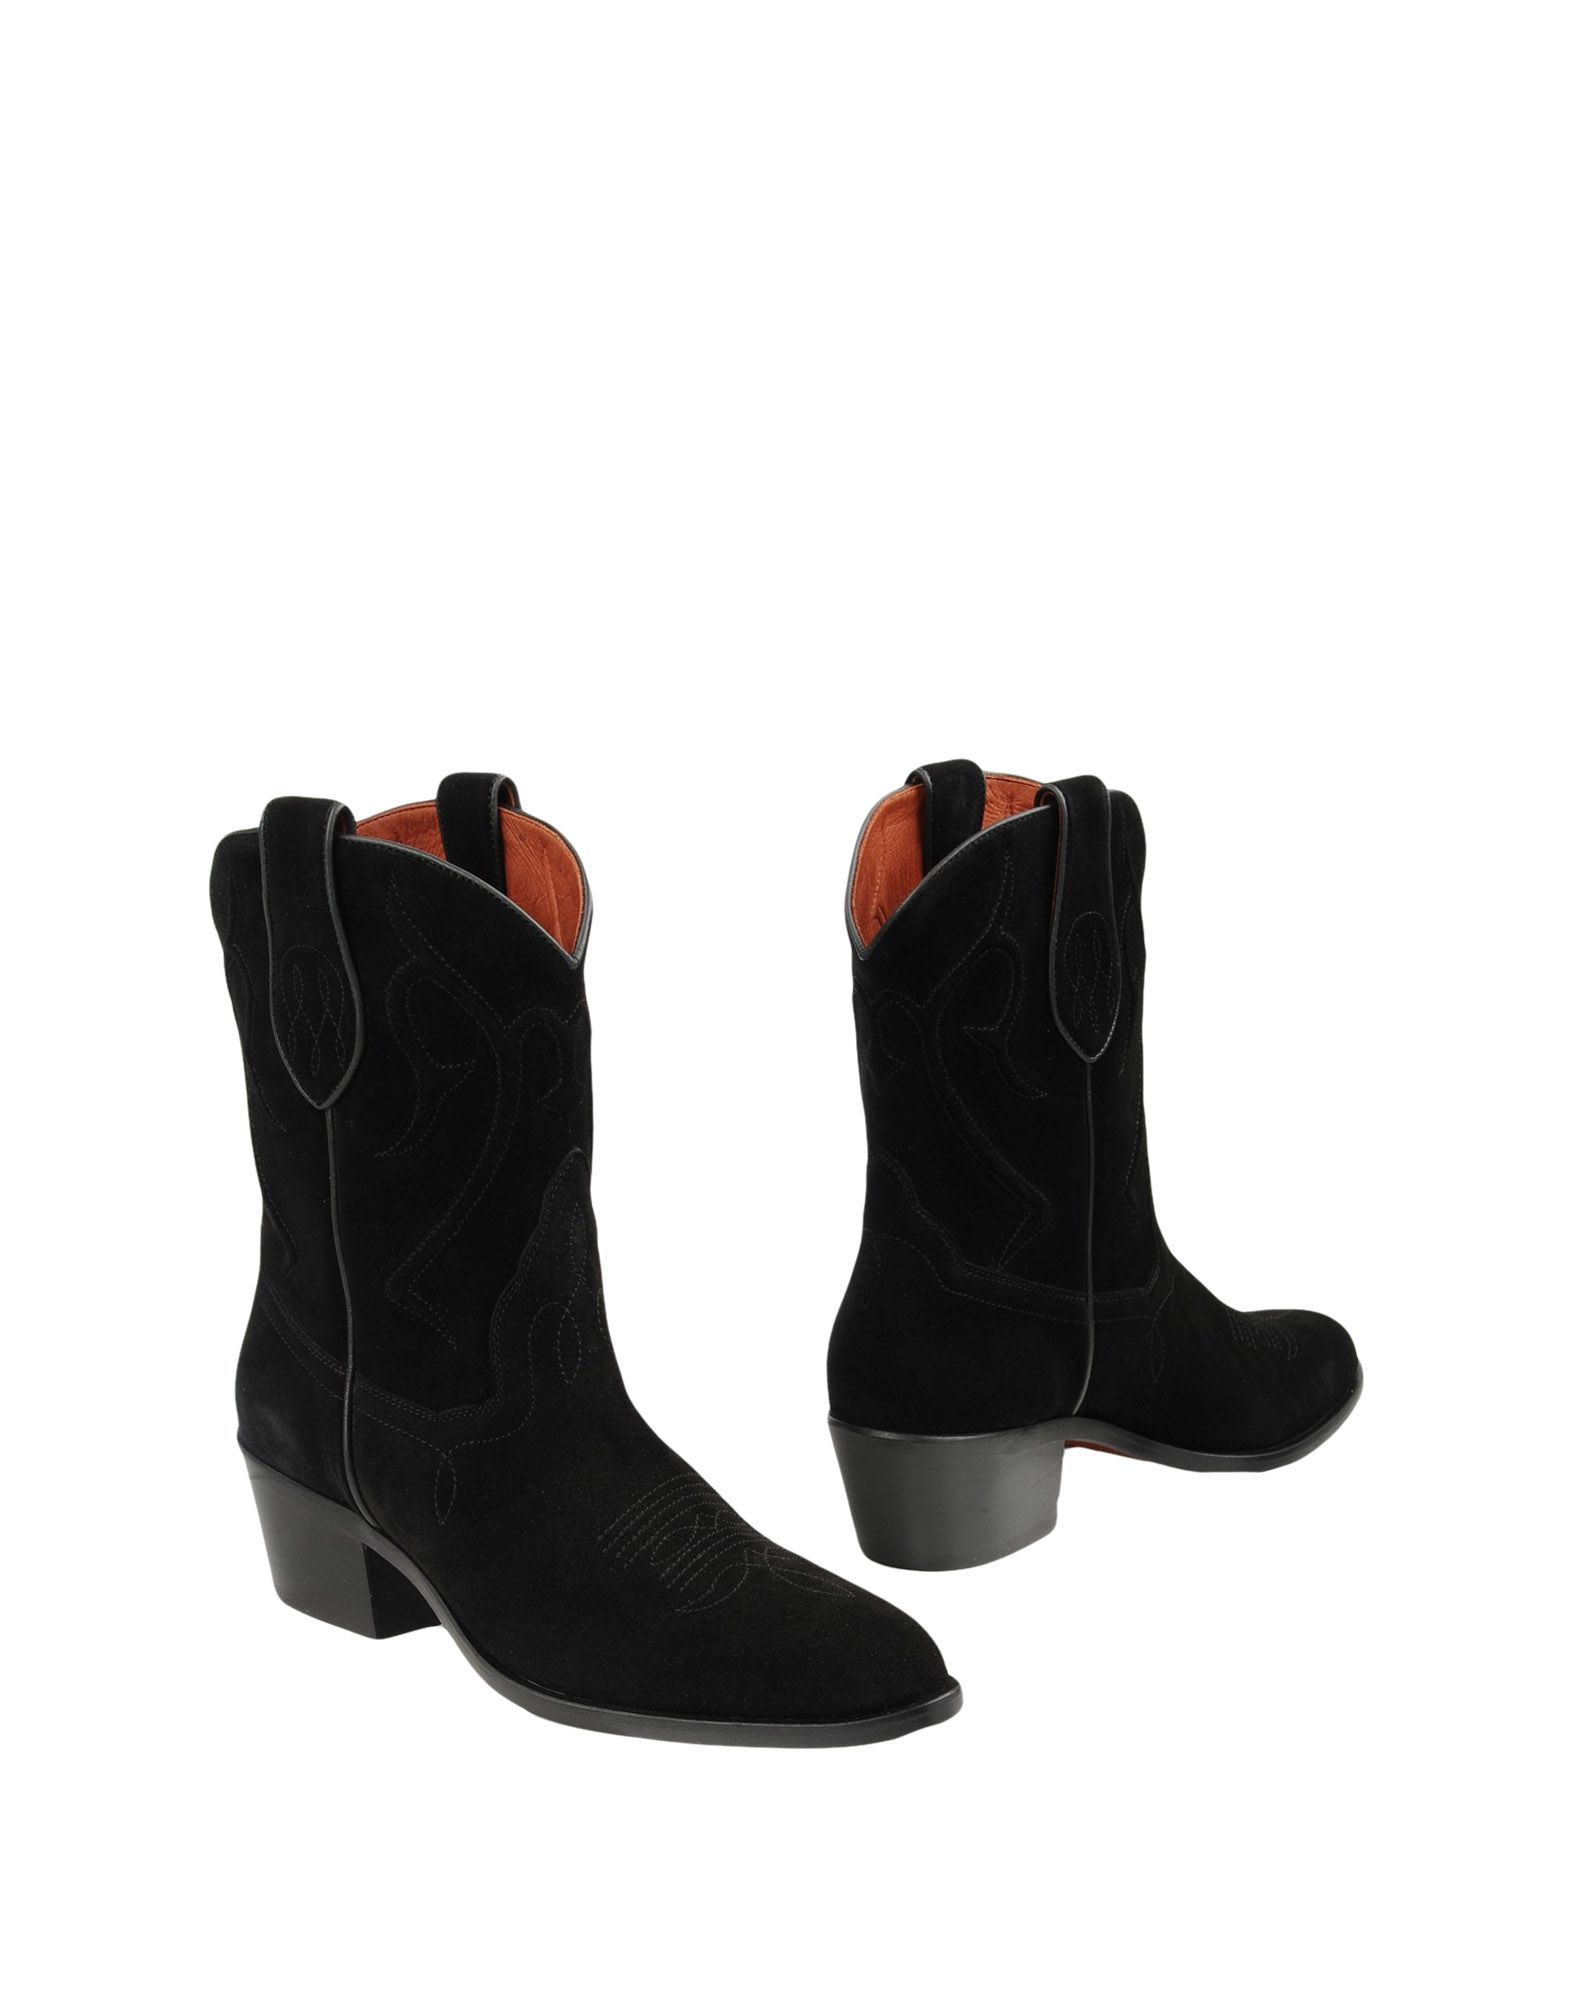 SONORA Ankle Boots in Black